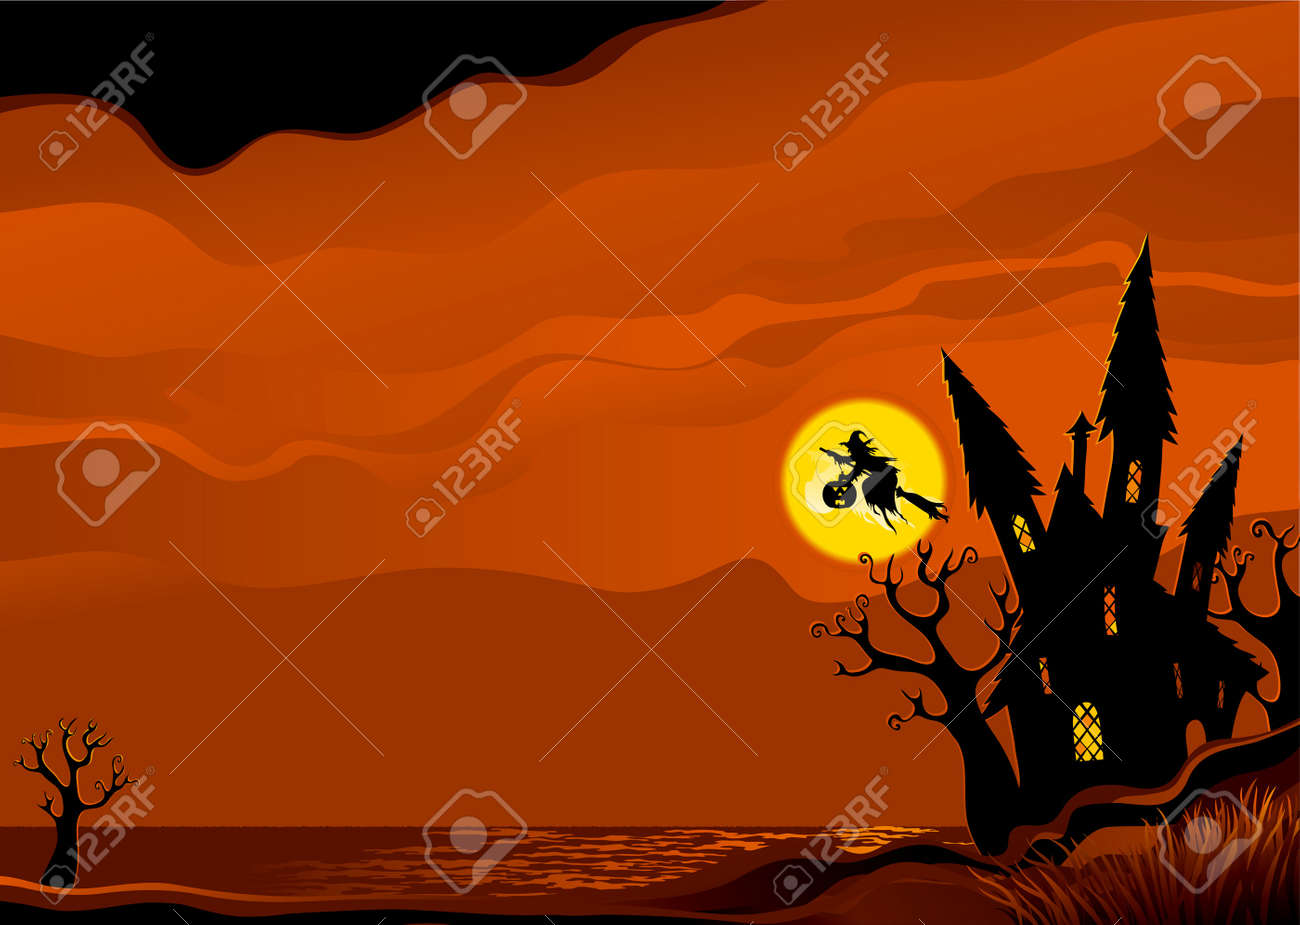 Halloween background. Witch flying on broom from her house. - 10465623